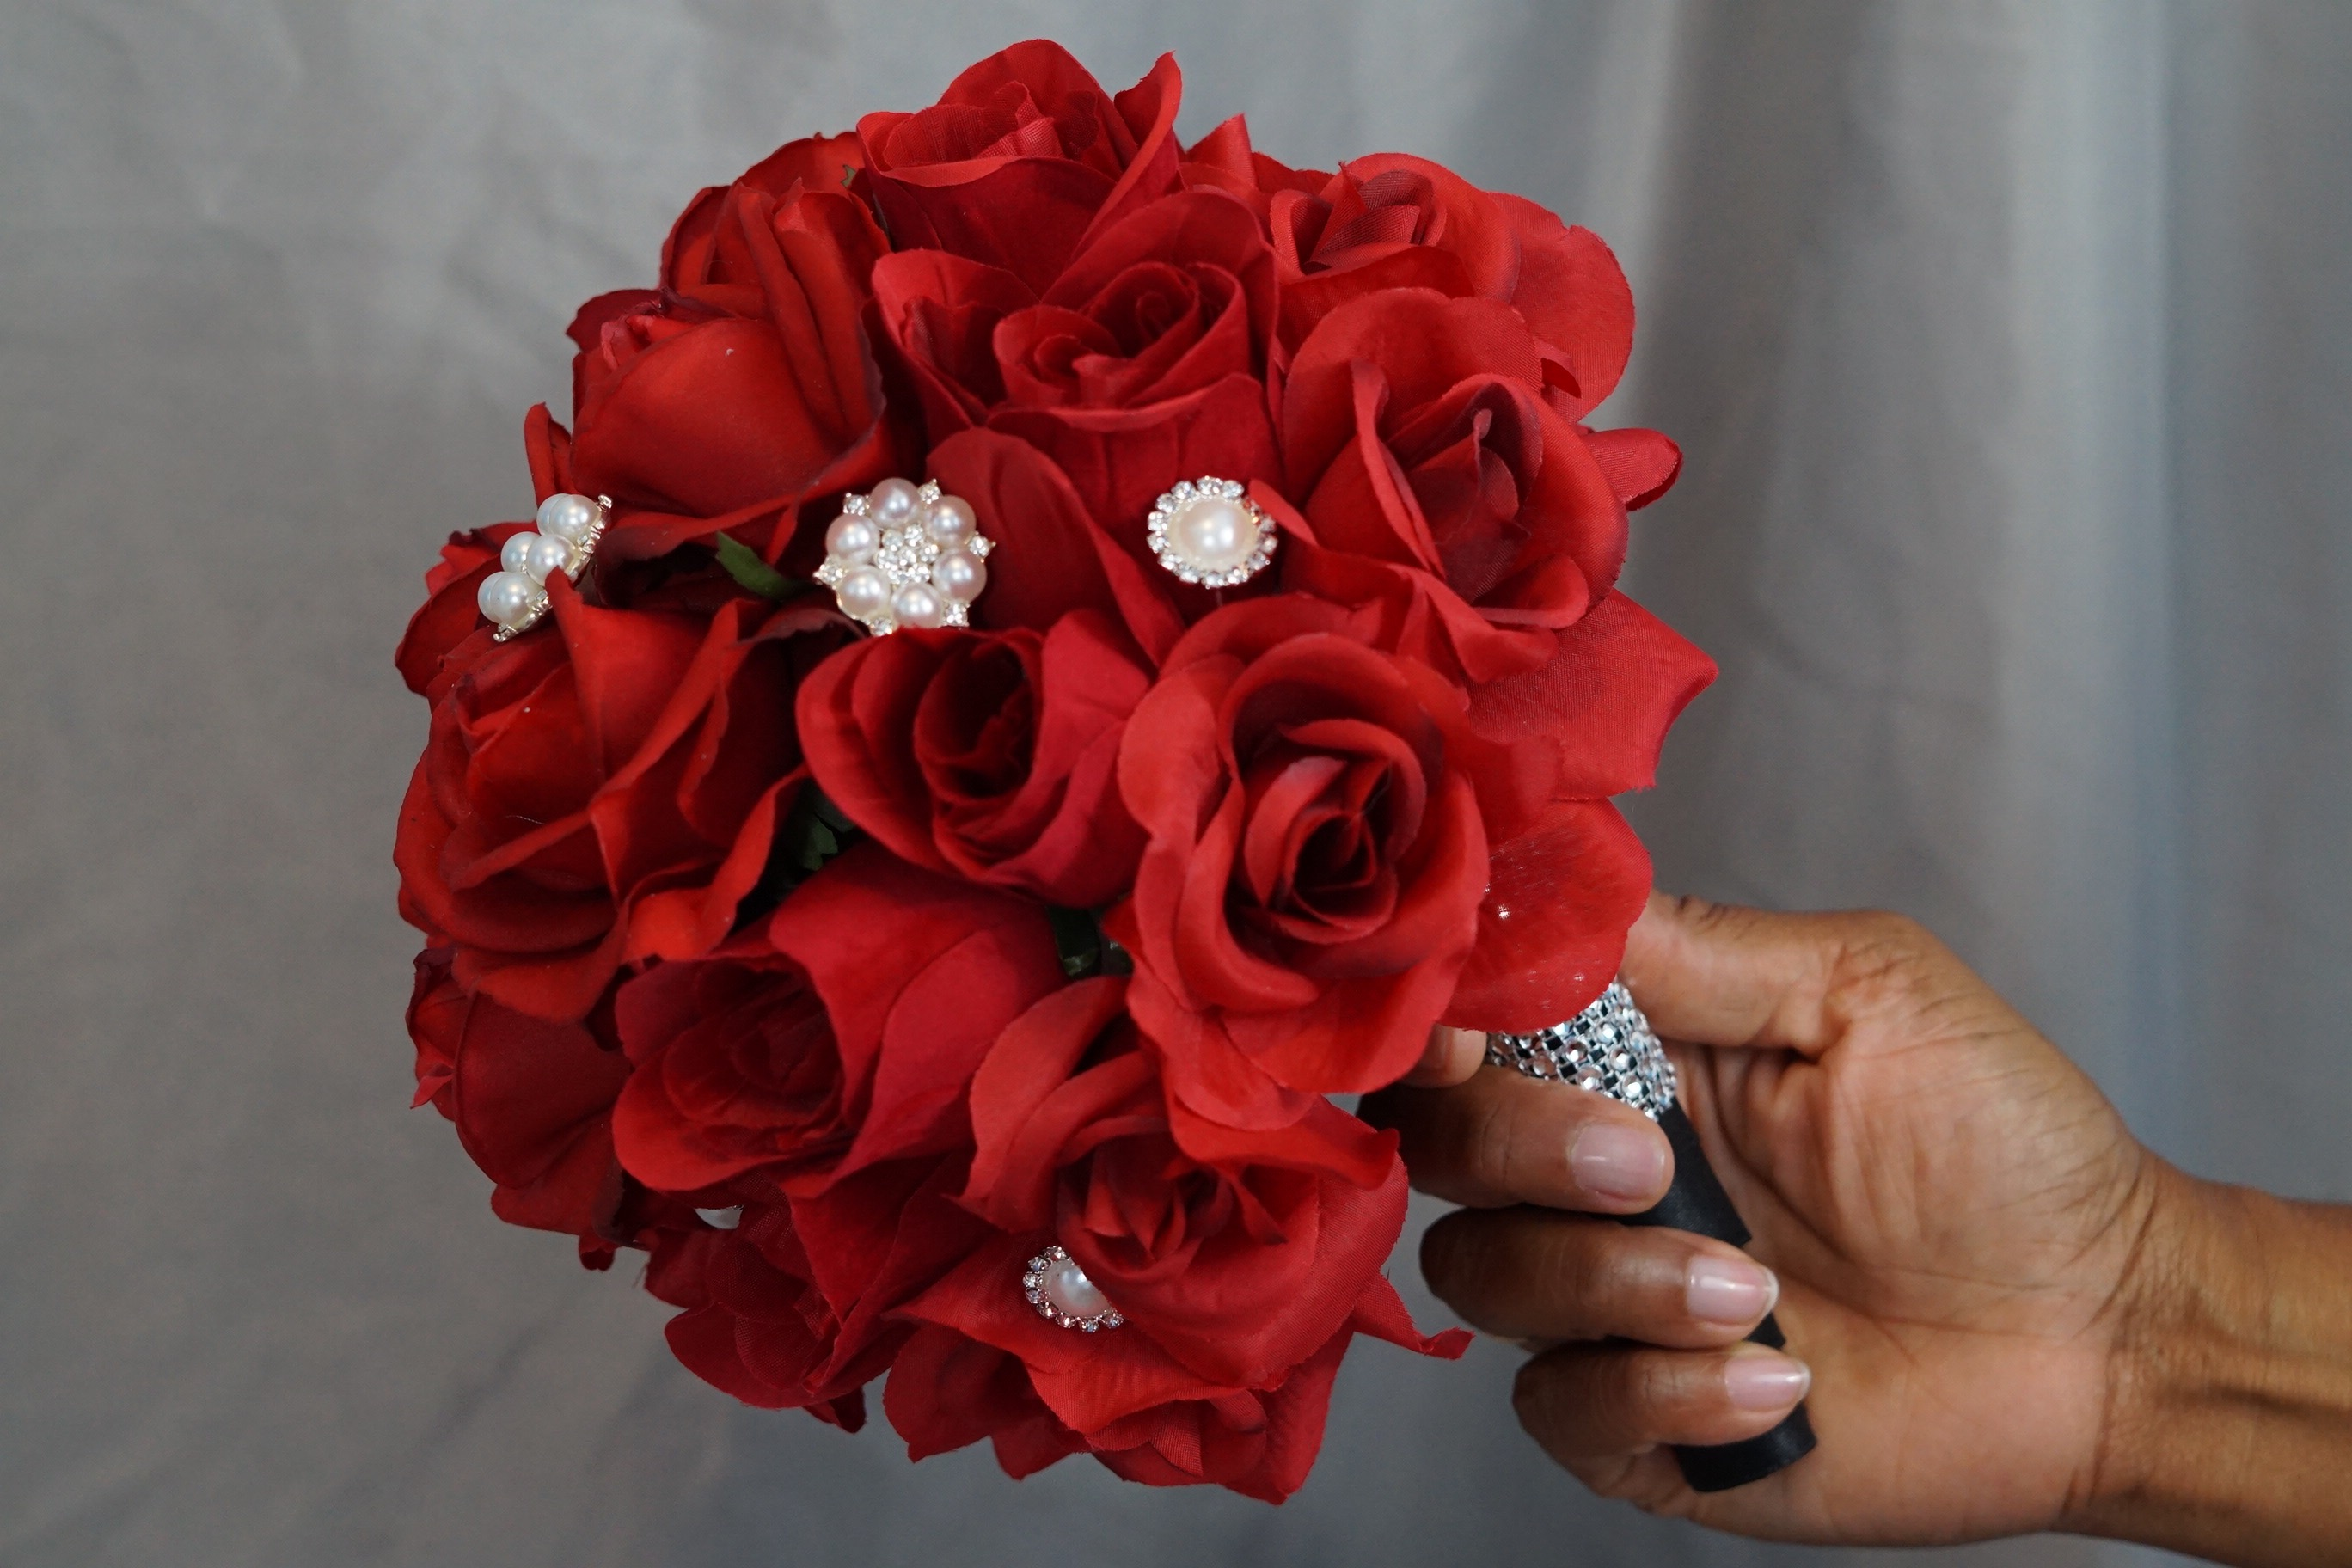 Simple To Make Beautiful Rose Wedding Bouquet For Less Than $30